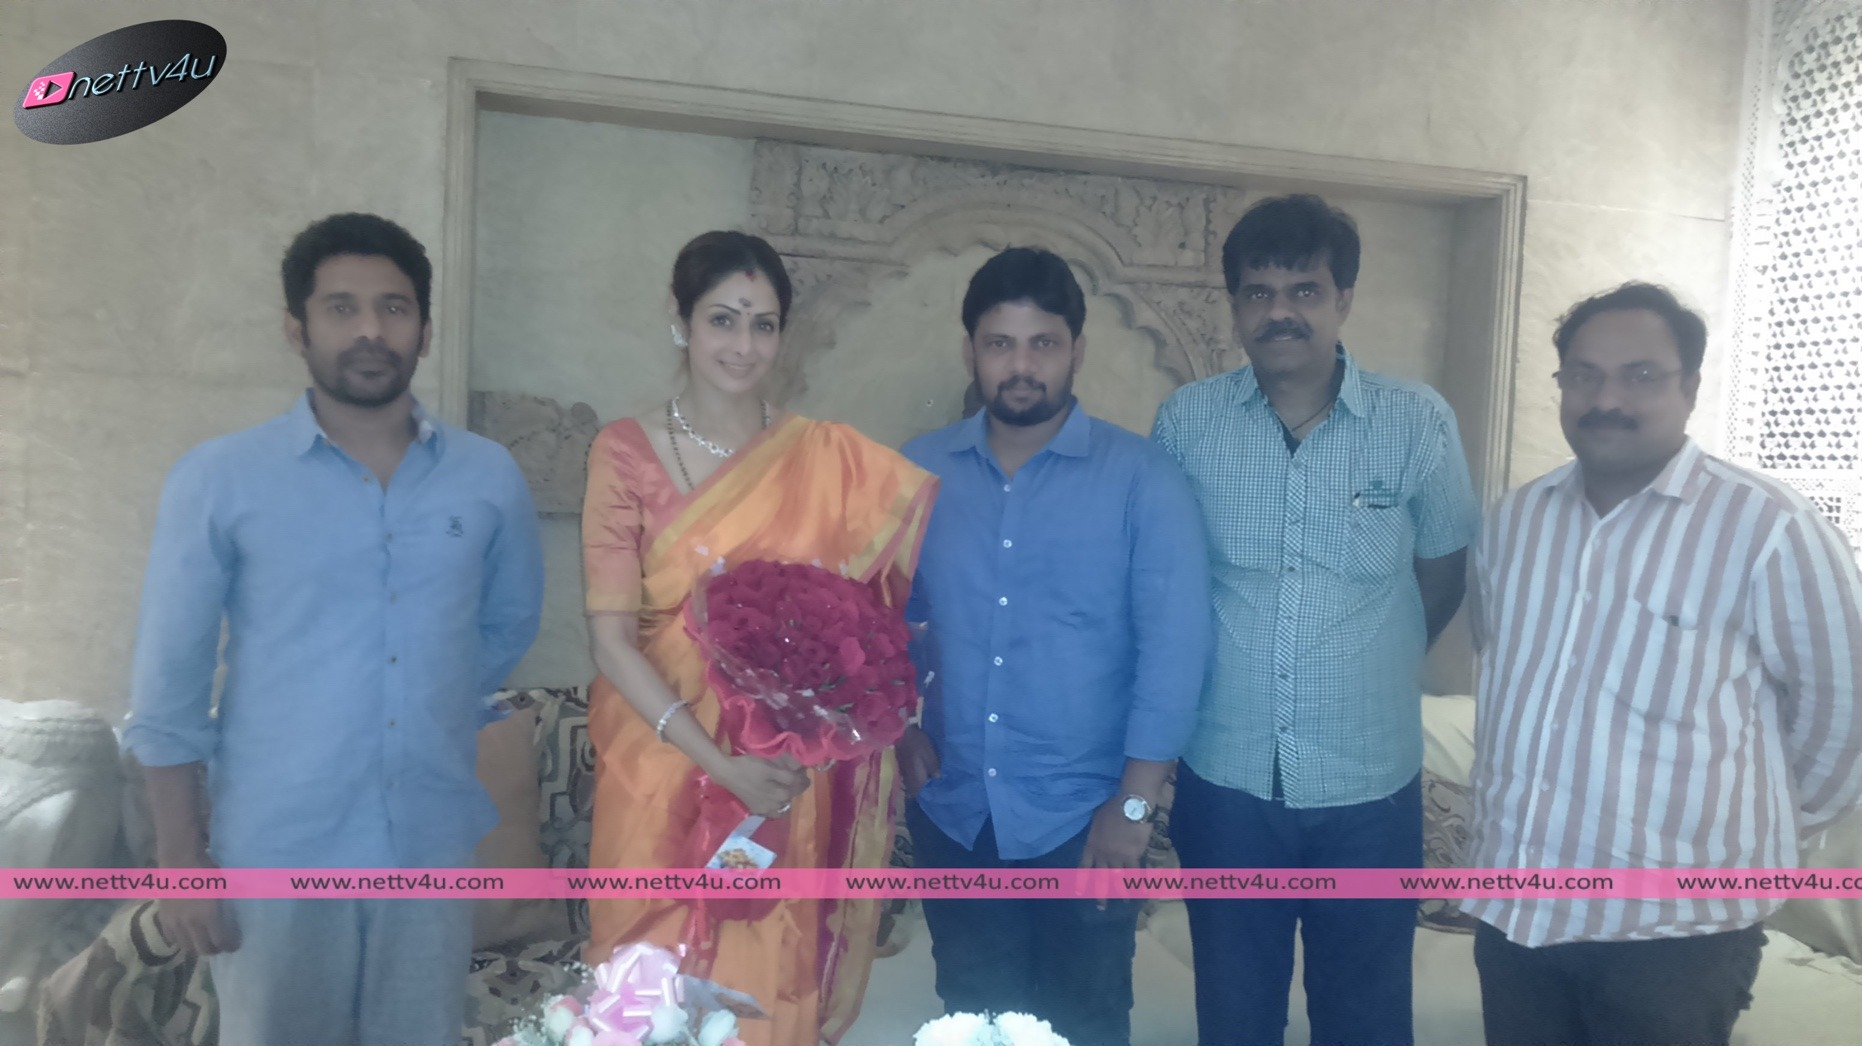 Actress Sri Devi Birthday - Wishes By Director Simbu Thevan And His Movie Puli Team Members